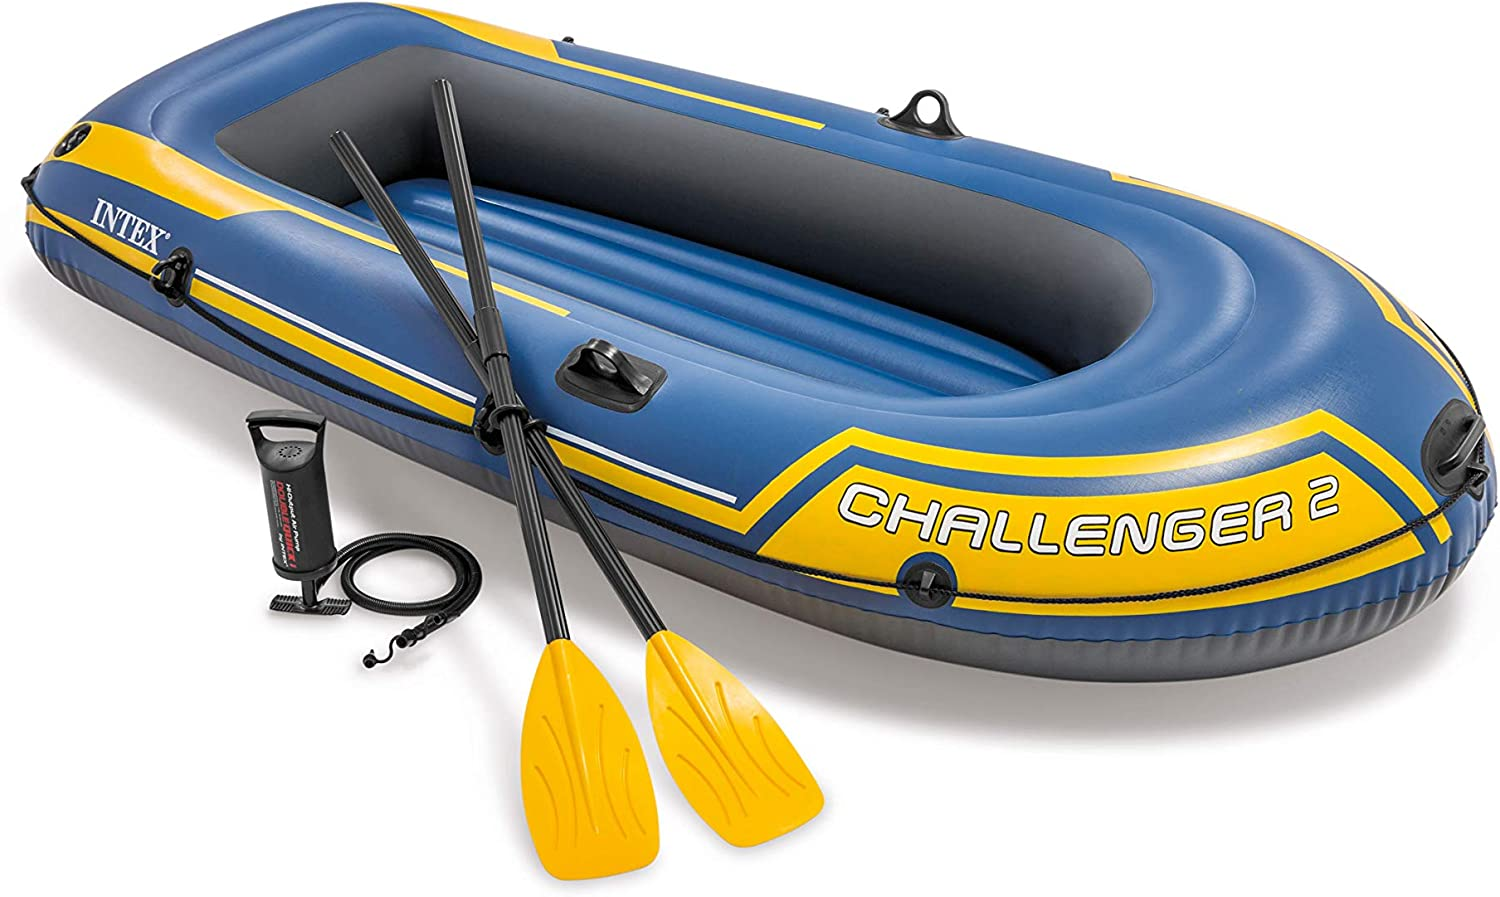 Amazon.com : Intex Challenger 2, 2-Person Inflatable Boat Set with